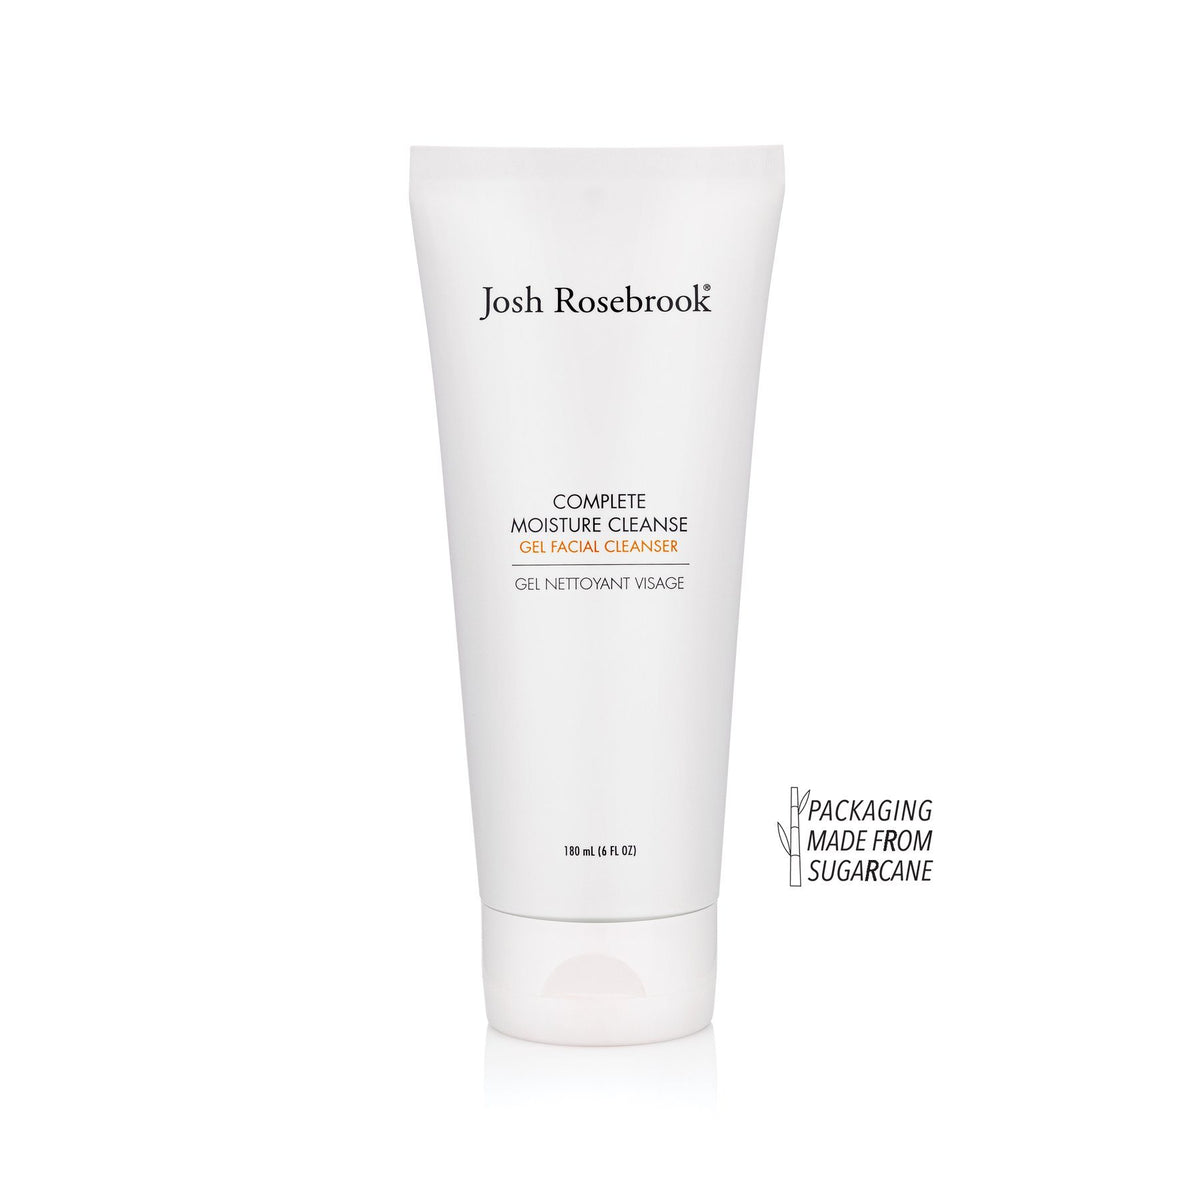 Complete Moisture Cleanse Reinigung Josh Rosebrook 180ml - Genuine Selection